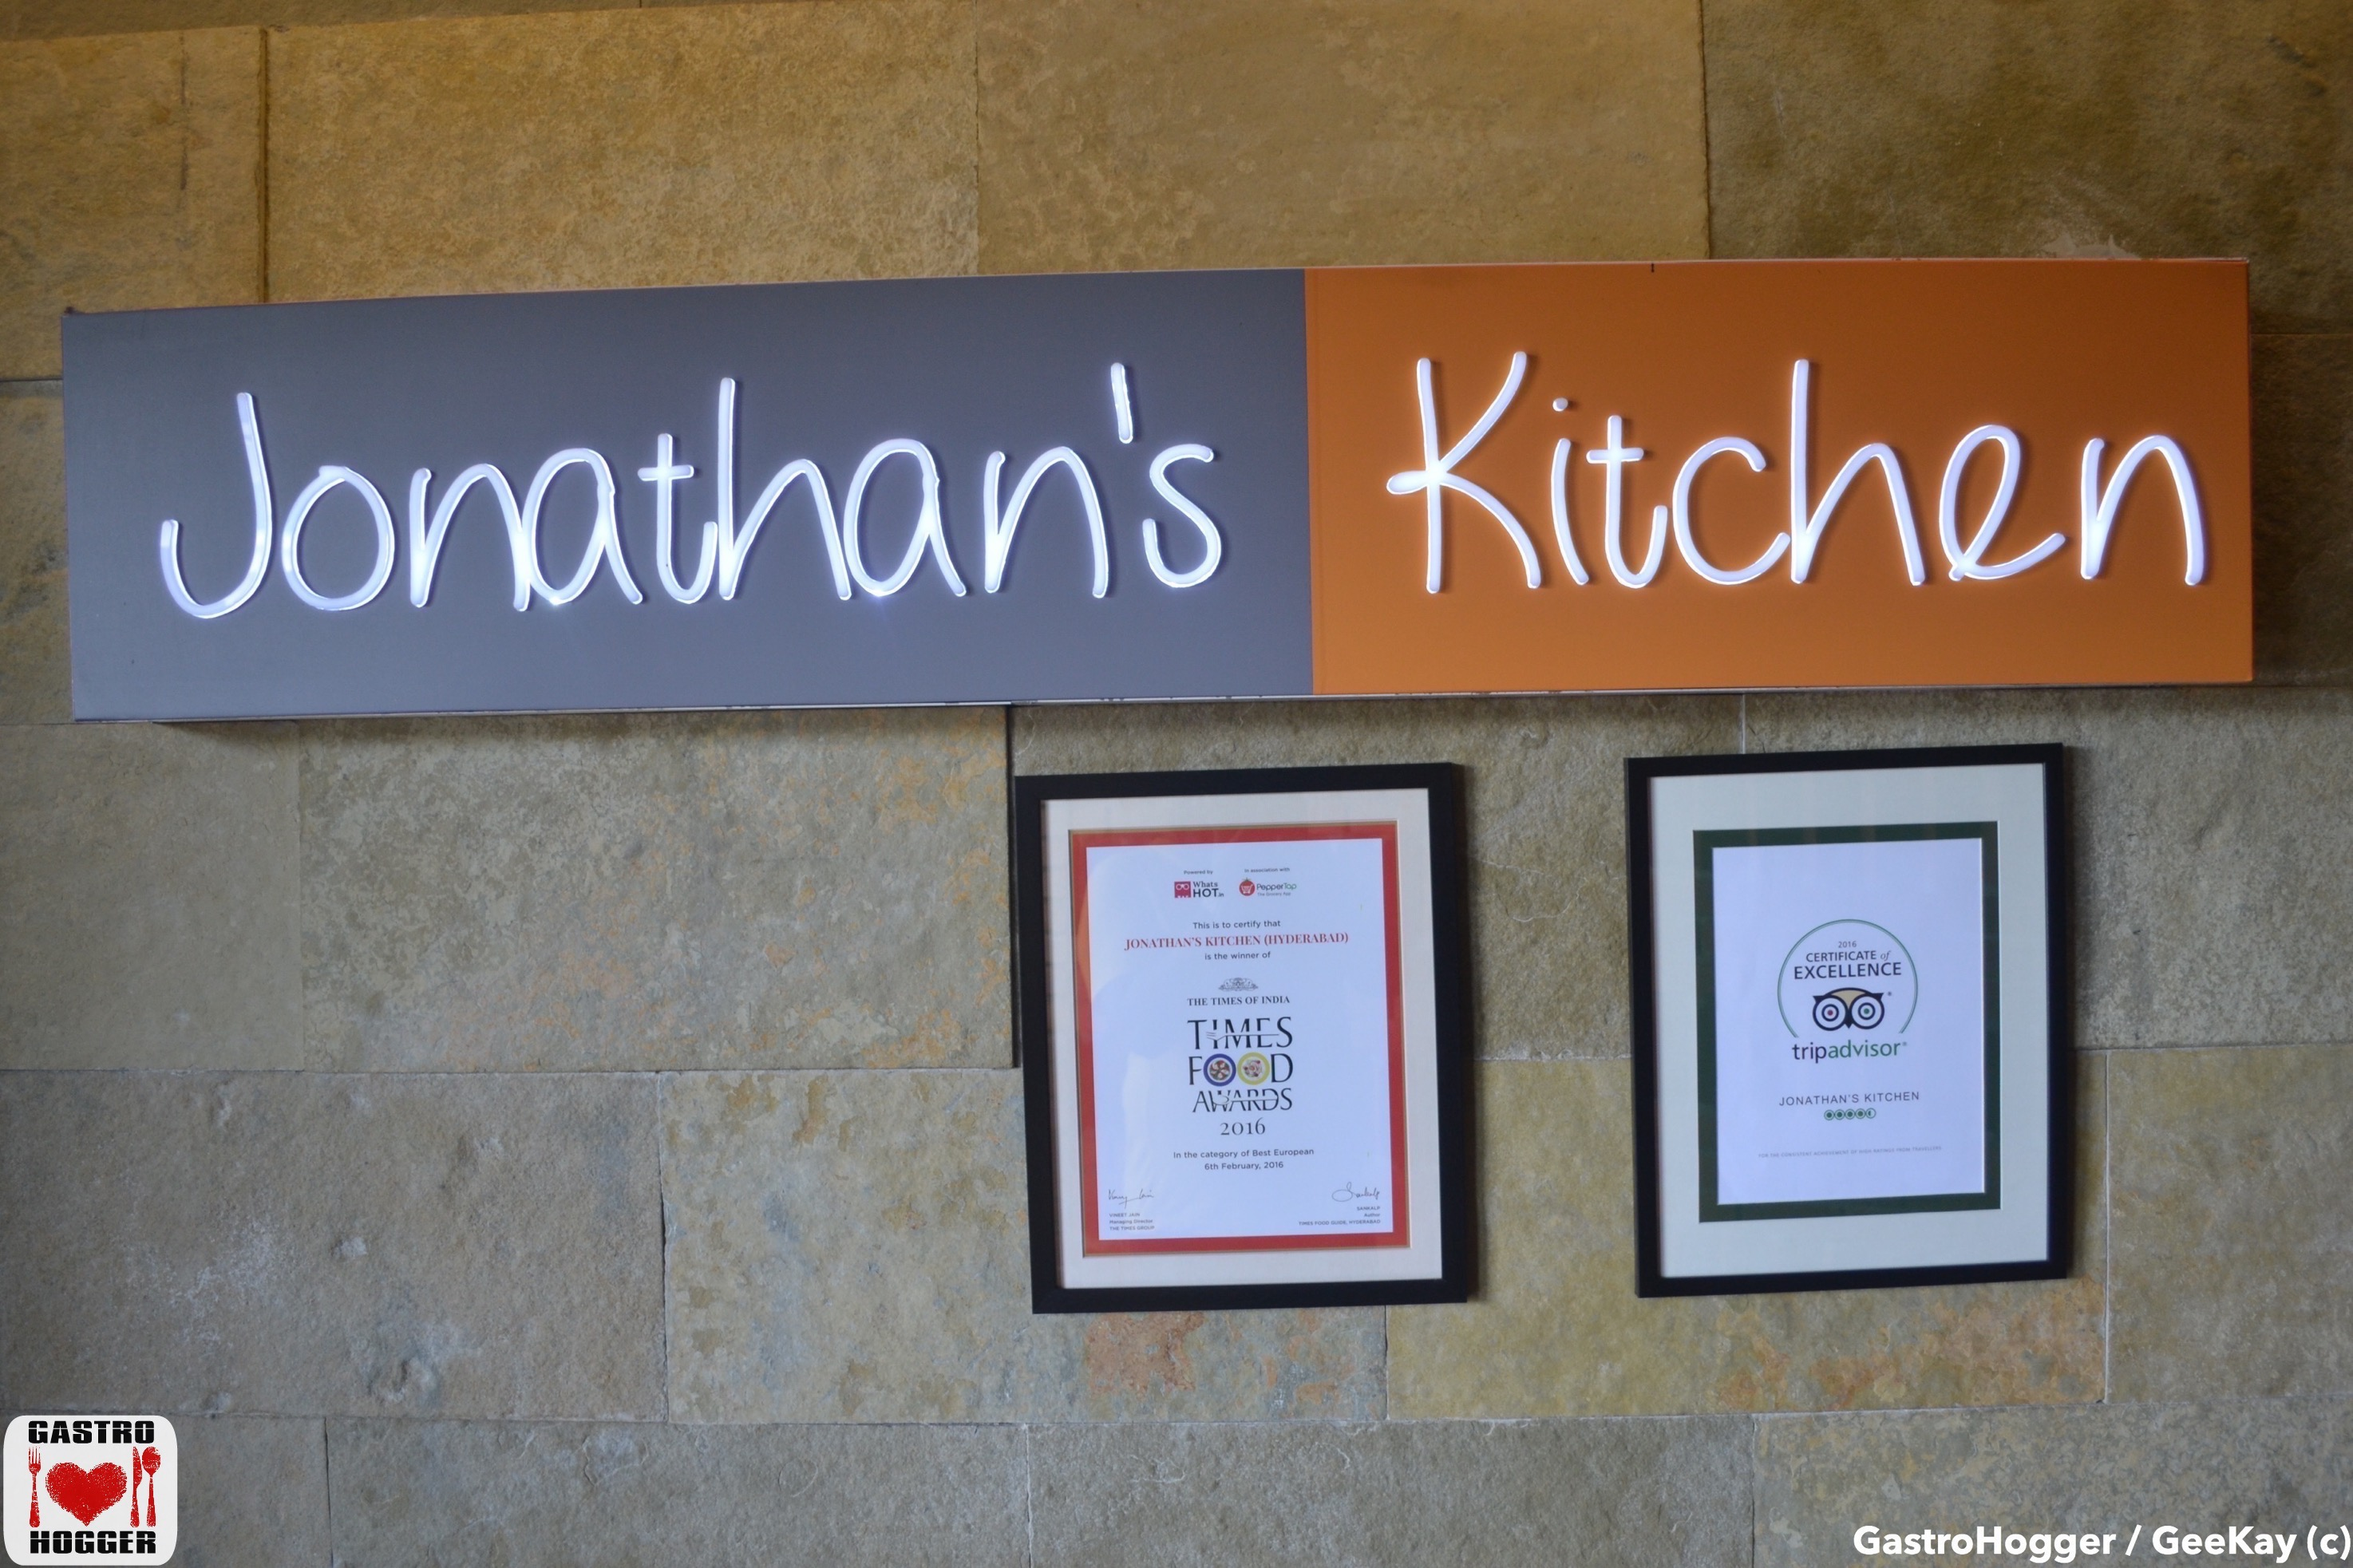 Jonathan's Kitchen